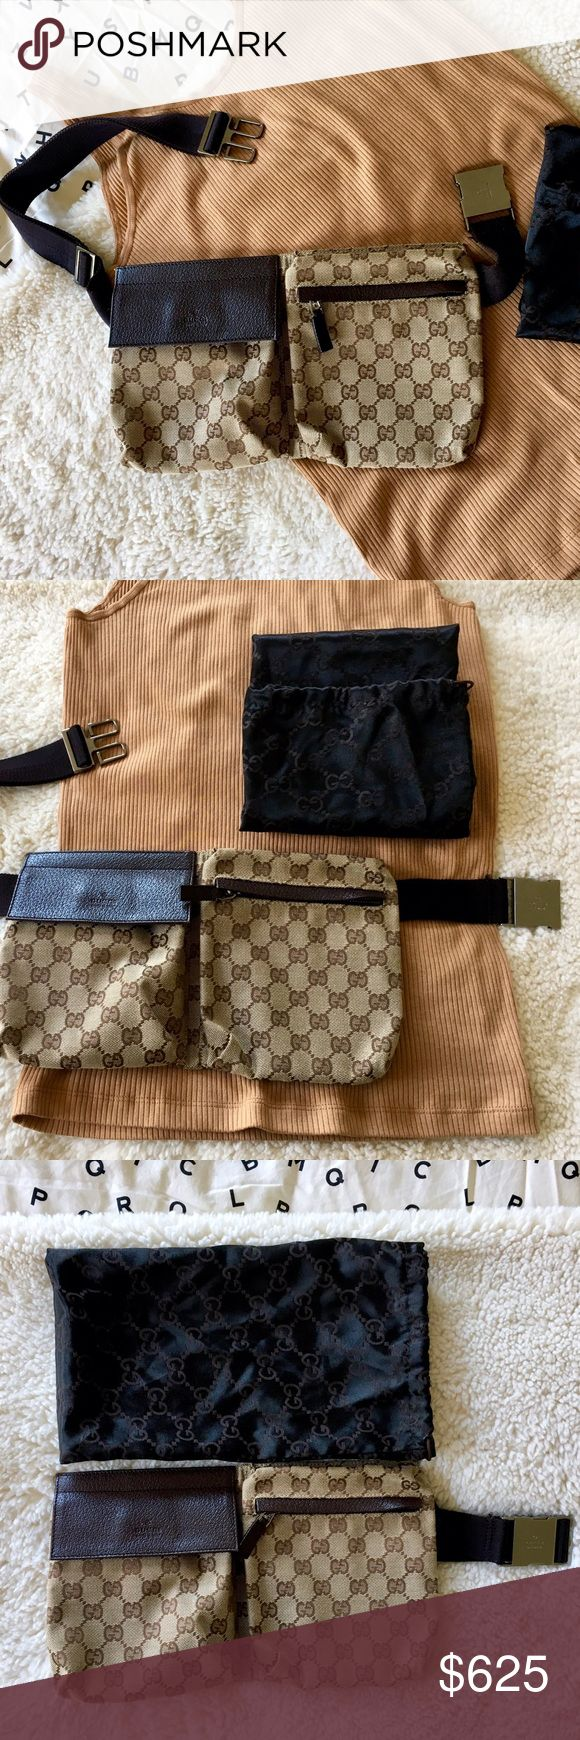 "Gucci GG Canvas Belt Bag- Beige/Ebony-Cocoa GG canvas belt bag with fastener on front pocket, and rear zip pocket. Original GG beige/ebony-cocoa leather trim and strap. Adjustable waist or shoulder strap with Gucci trademark engraved clip, ruthenium hardware closure. Double compartments with hook-and-loop flap velcro closure and zip. Front and rear zippers run smoothly. Dust bag included. Made in Italy.                            Approx measurements:  10"" x 6"" x 1"" Gucci Bags Crossbody Bags"